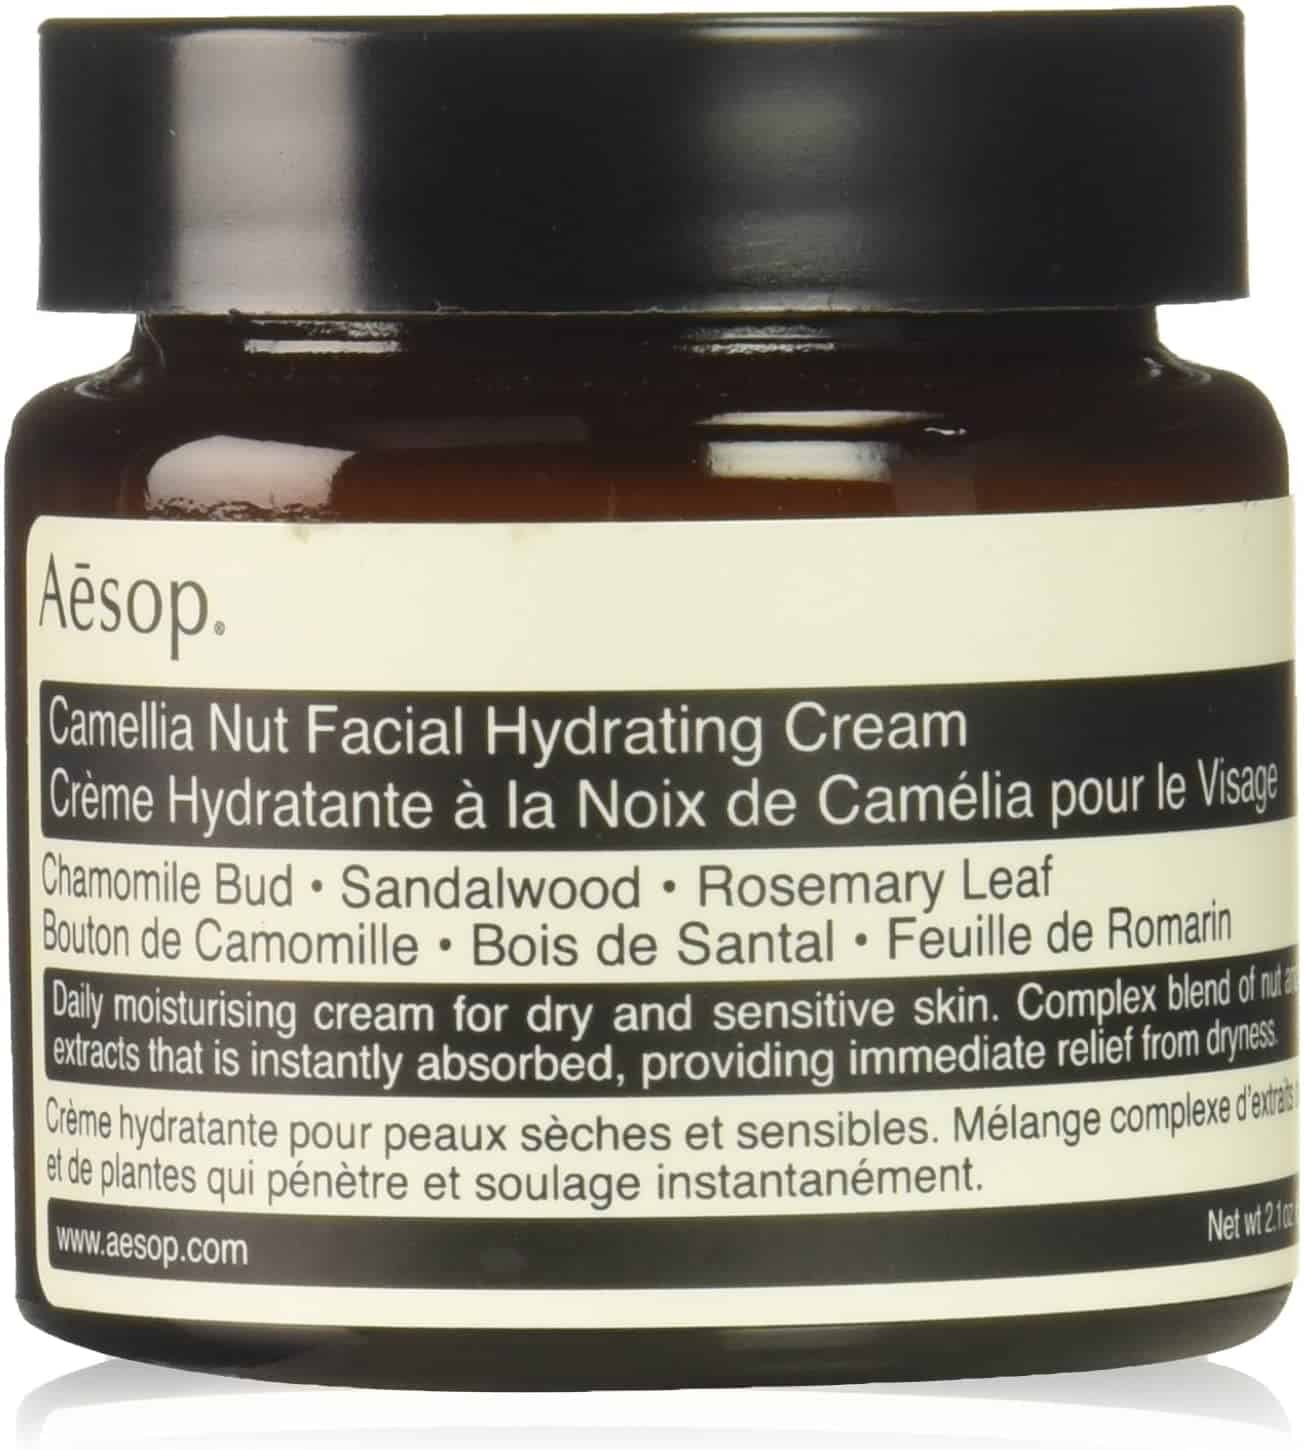 Aesop Camellia Nut Facial Hydrating Cream 2.1oz is a skincare an 11 year old can use, What skincare should an 11 year old use?, Which face wash is best for 14 year girl?, Which is the best moisturizer for teenage girl?, Which day cream is best for teenagers? Aesop Camellia nut Facial Hydrating cream ingredients